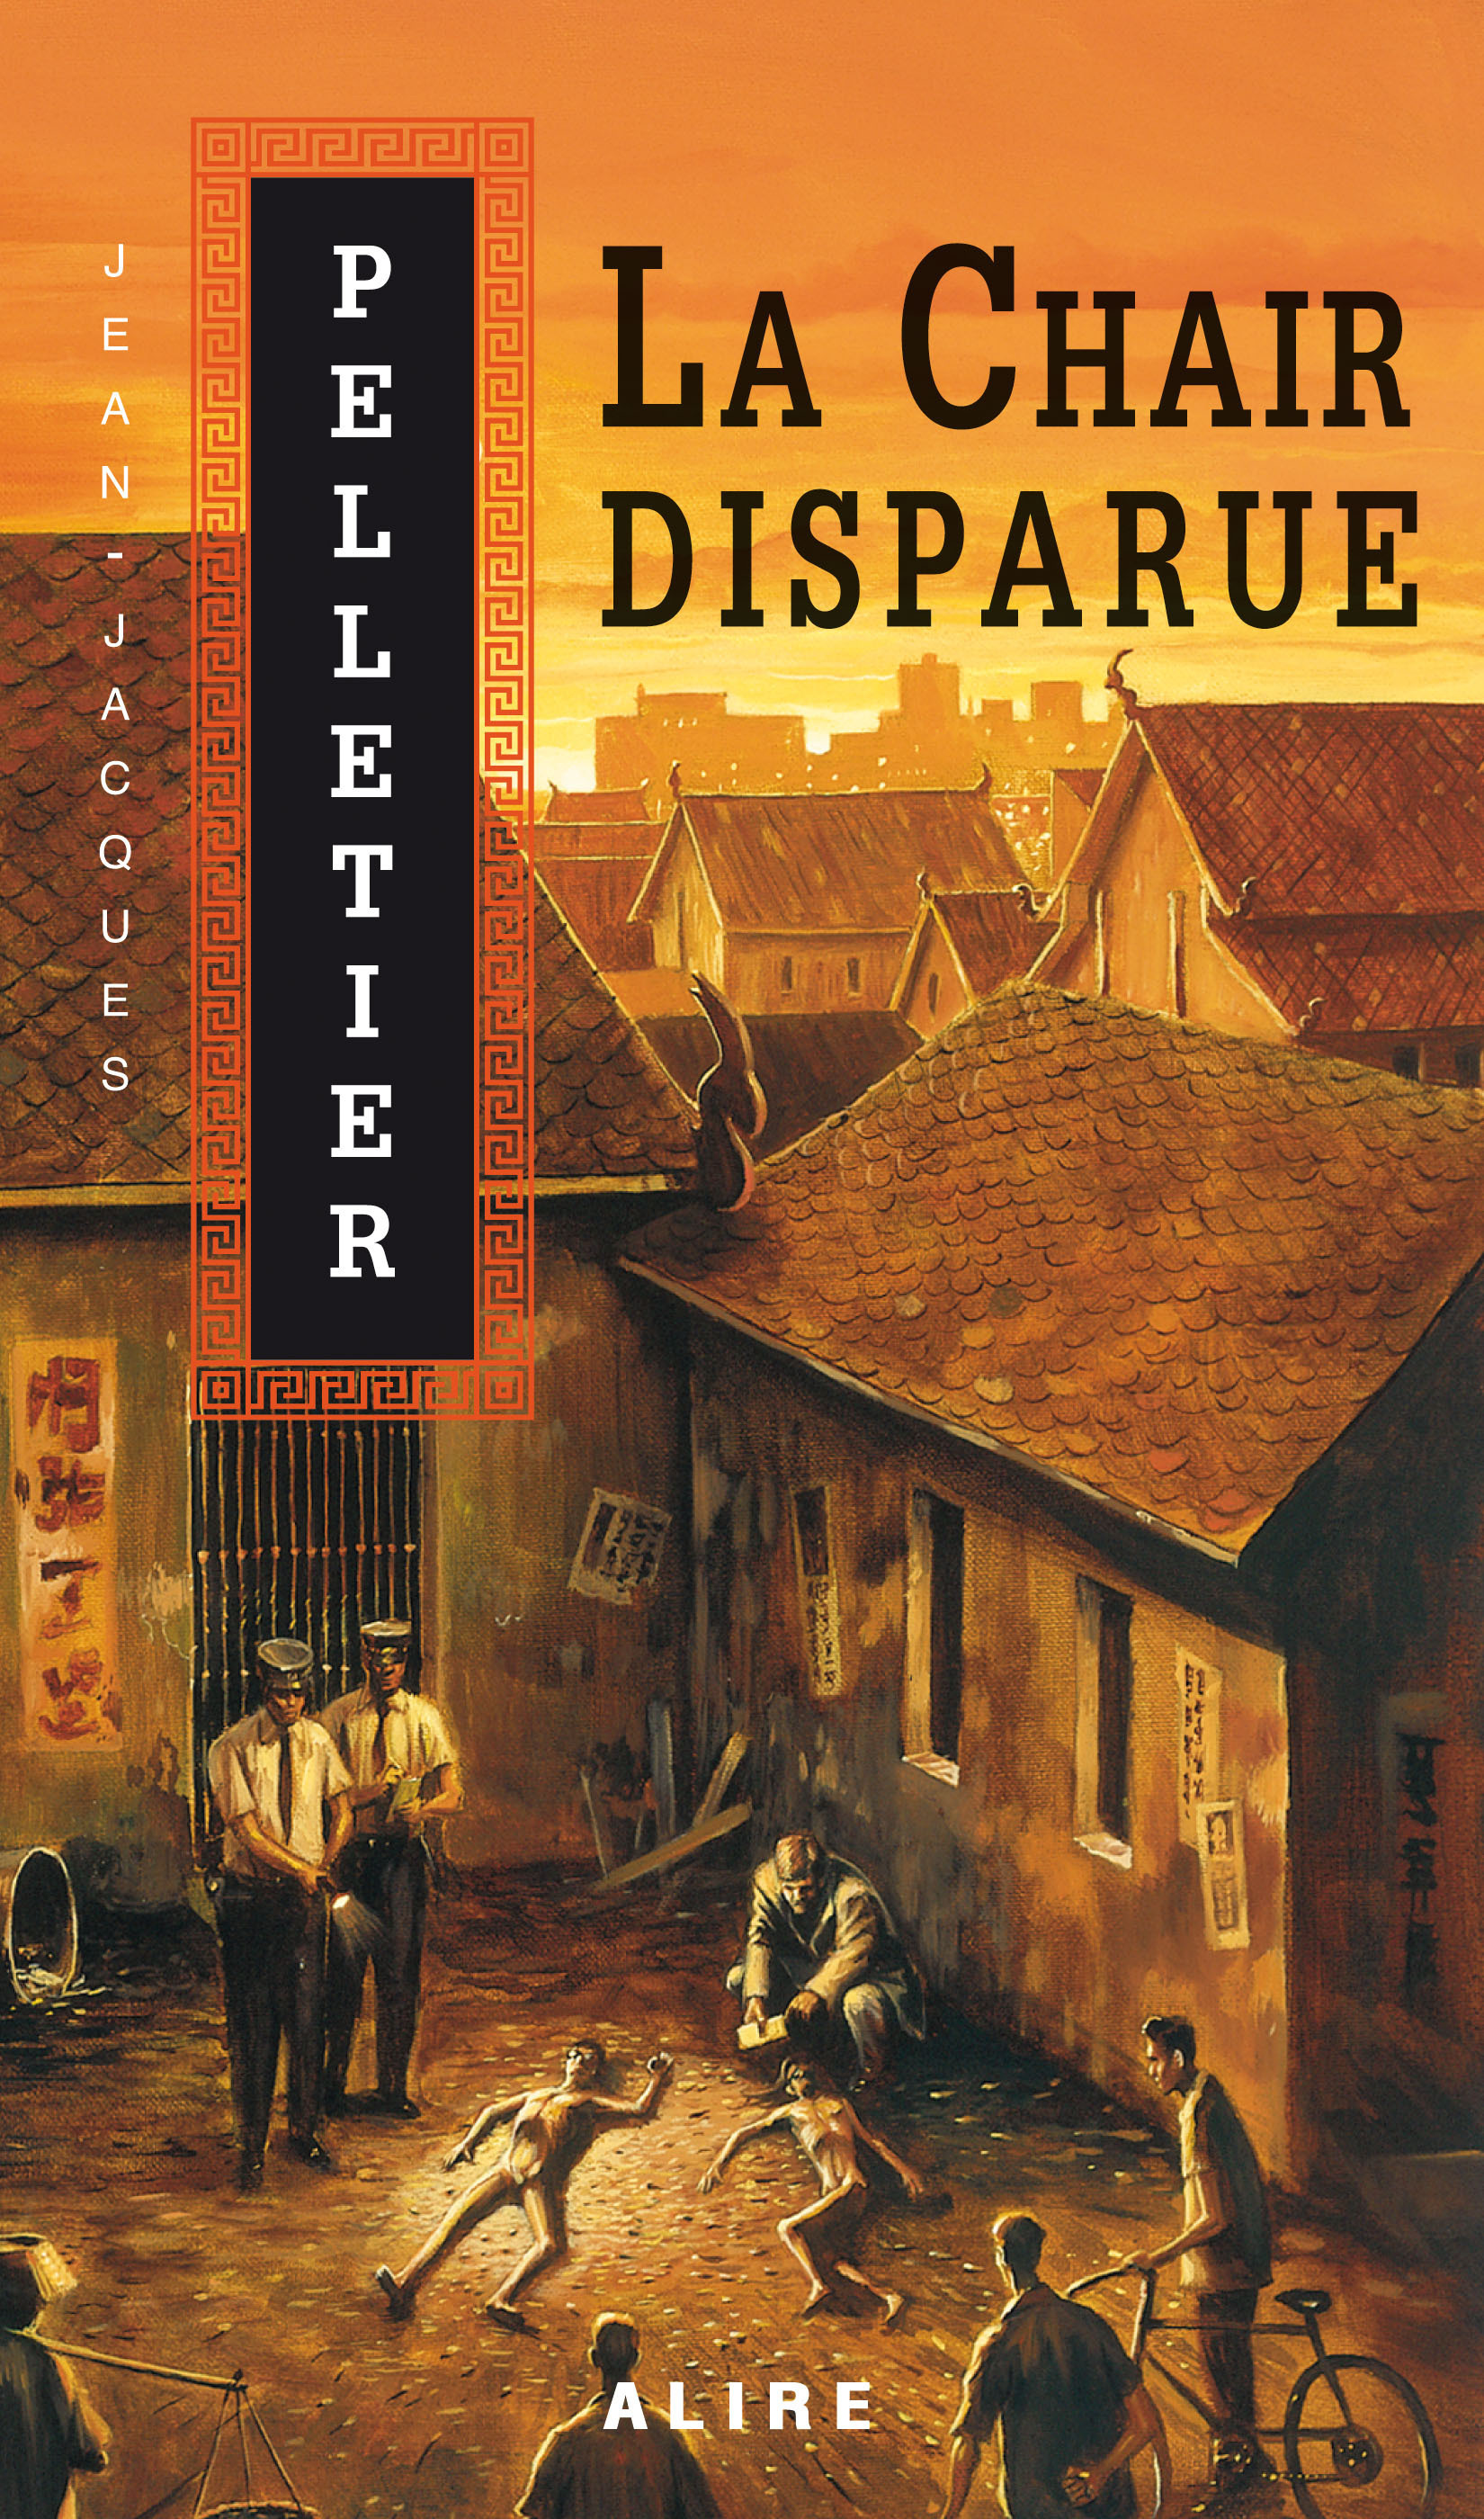 Couverture : Chair disparue (La) T.1 Jean-jacques Pelletier